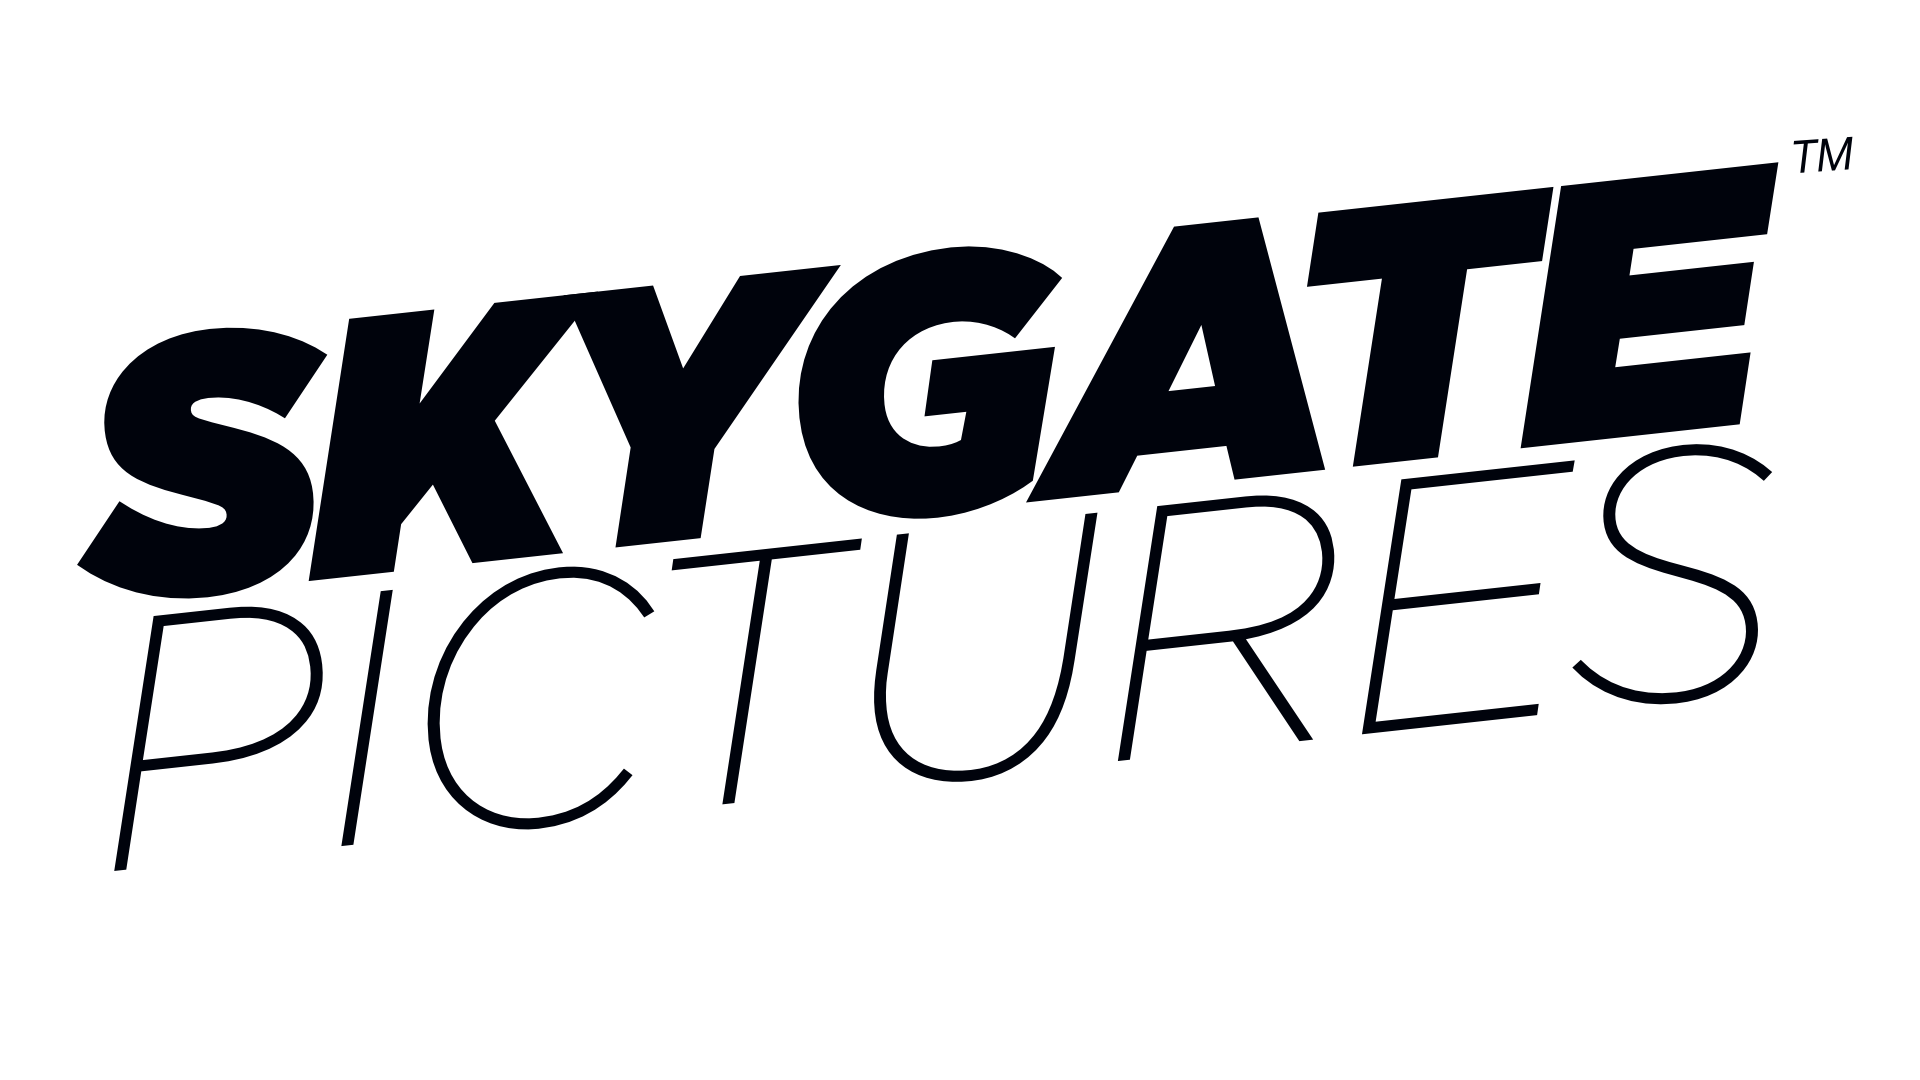 skygate-logo.png